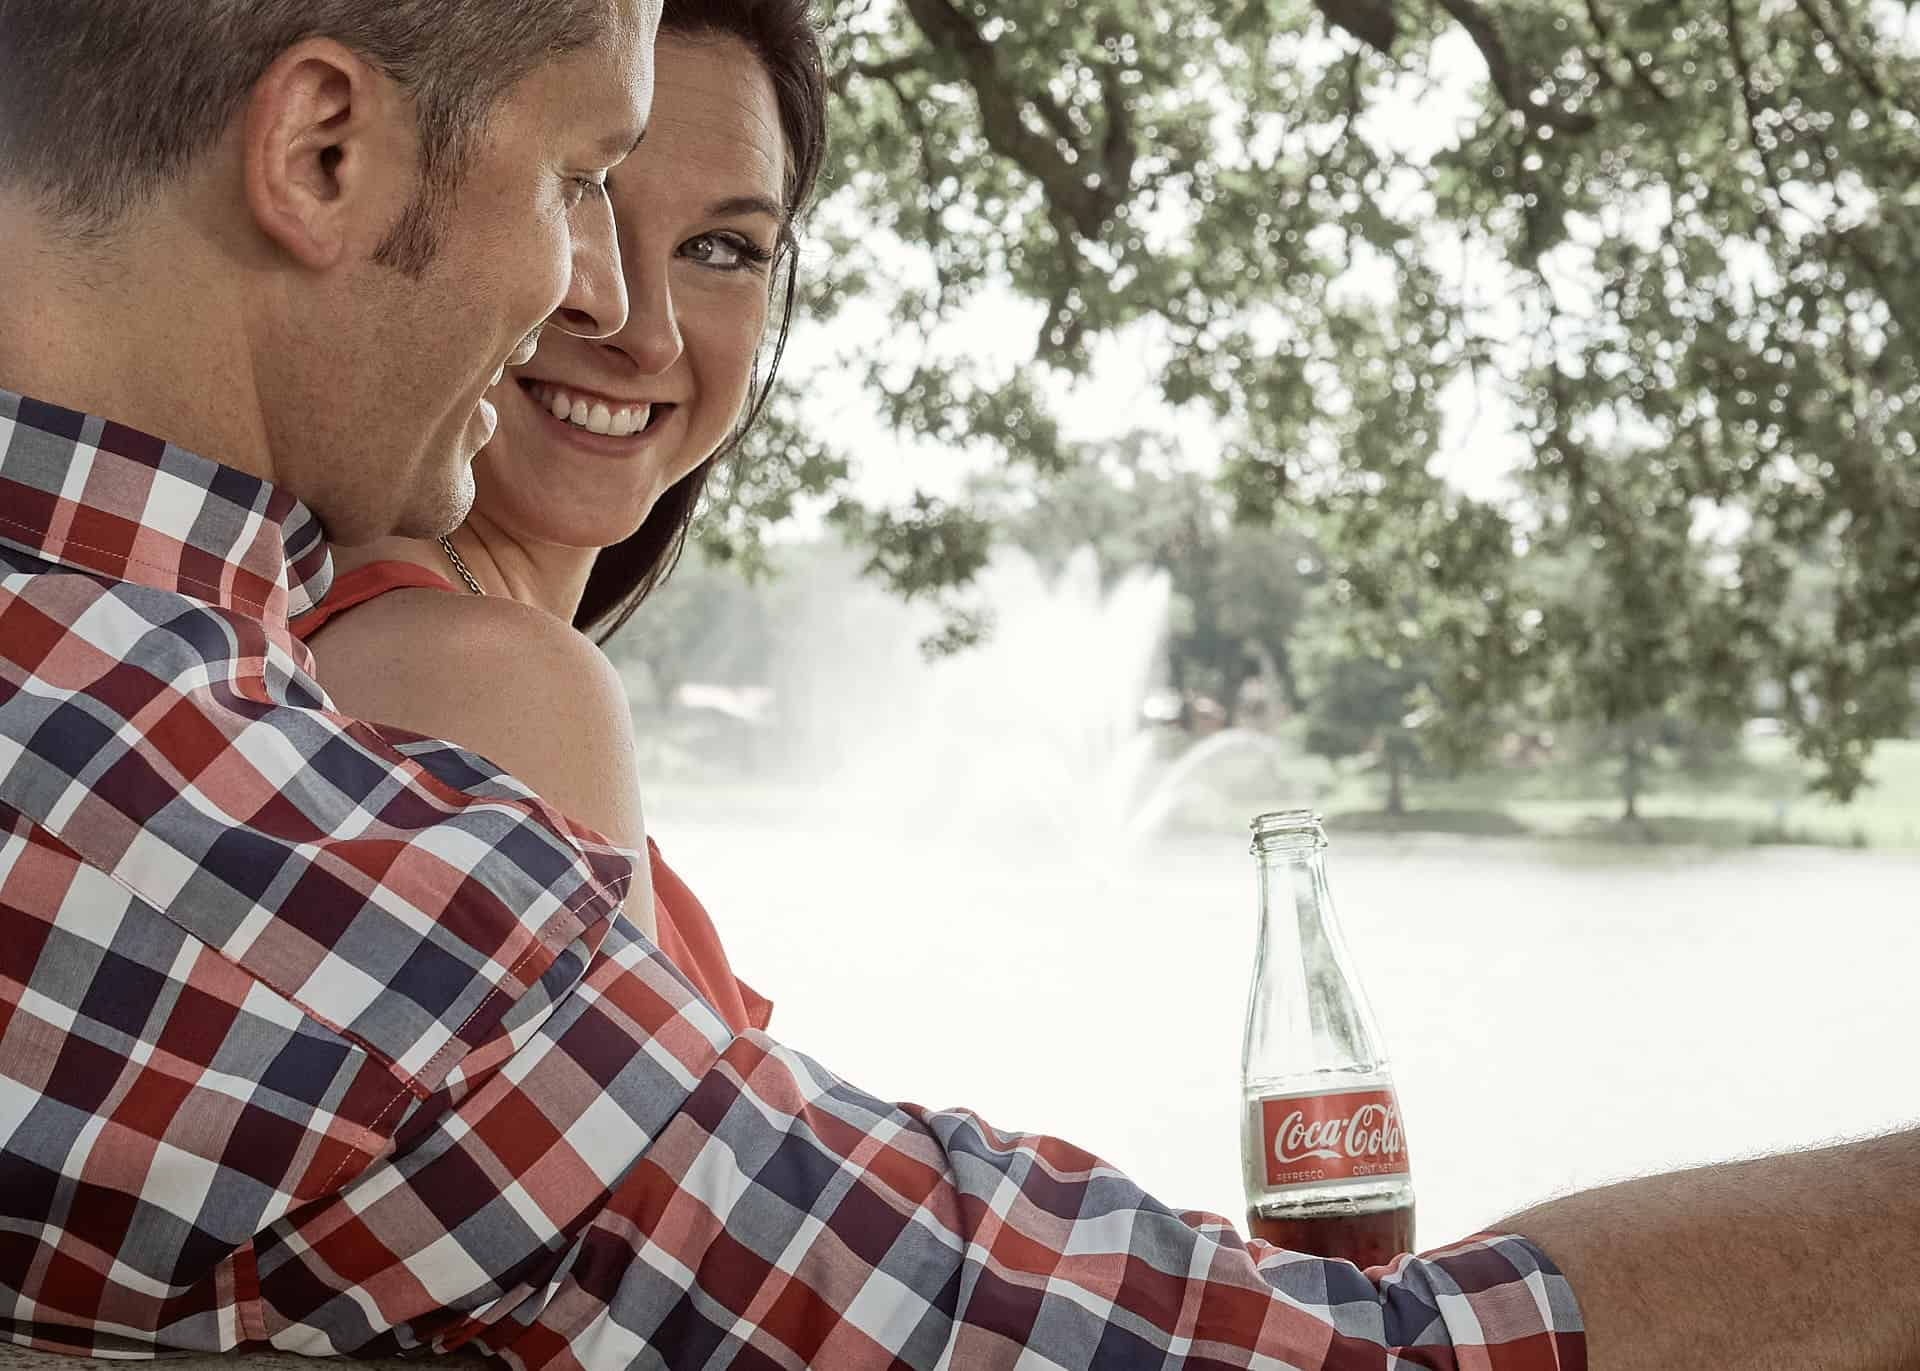 Couple in park drinking Coca-Cola.